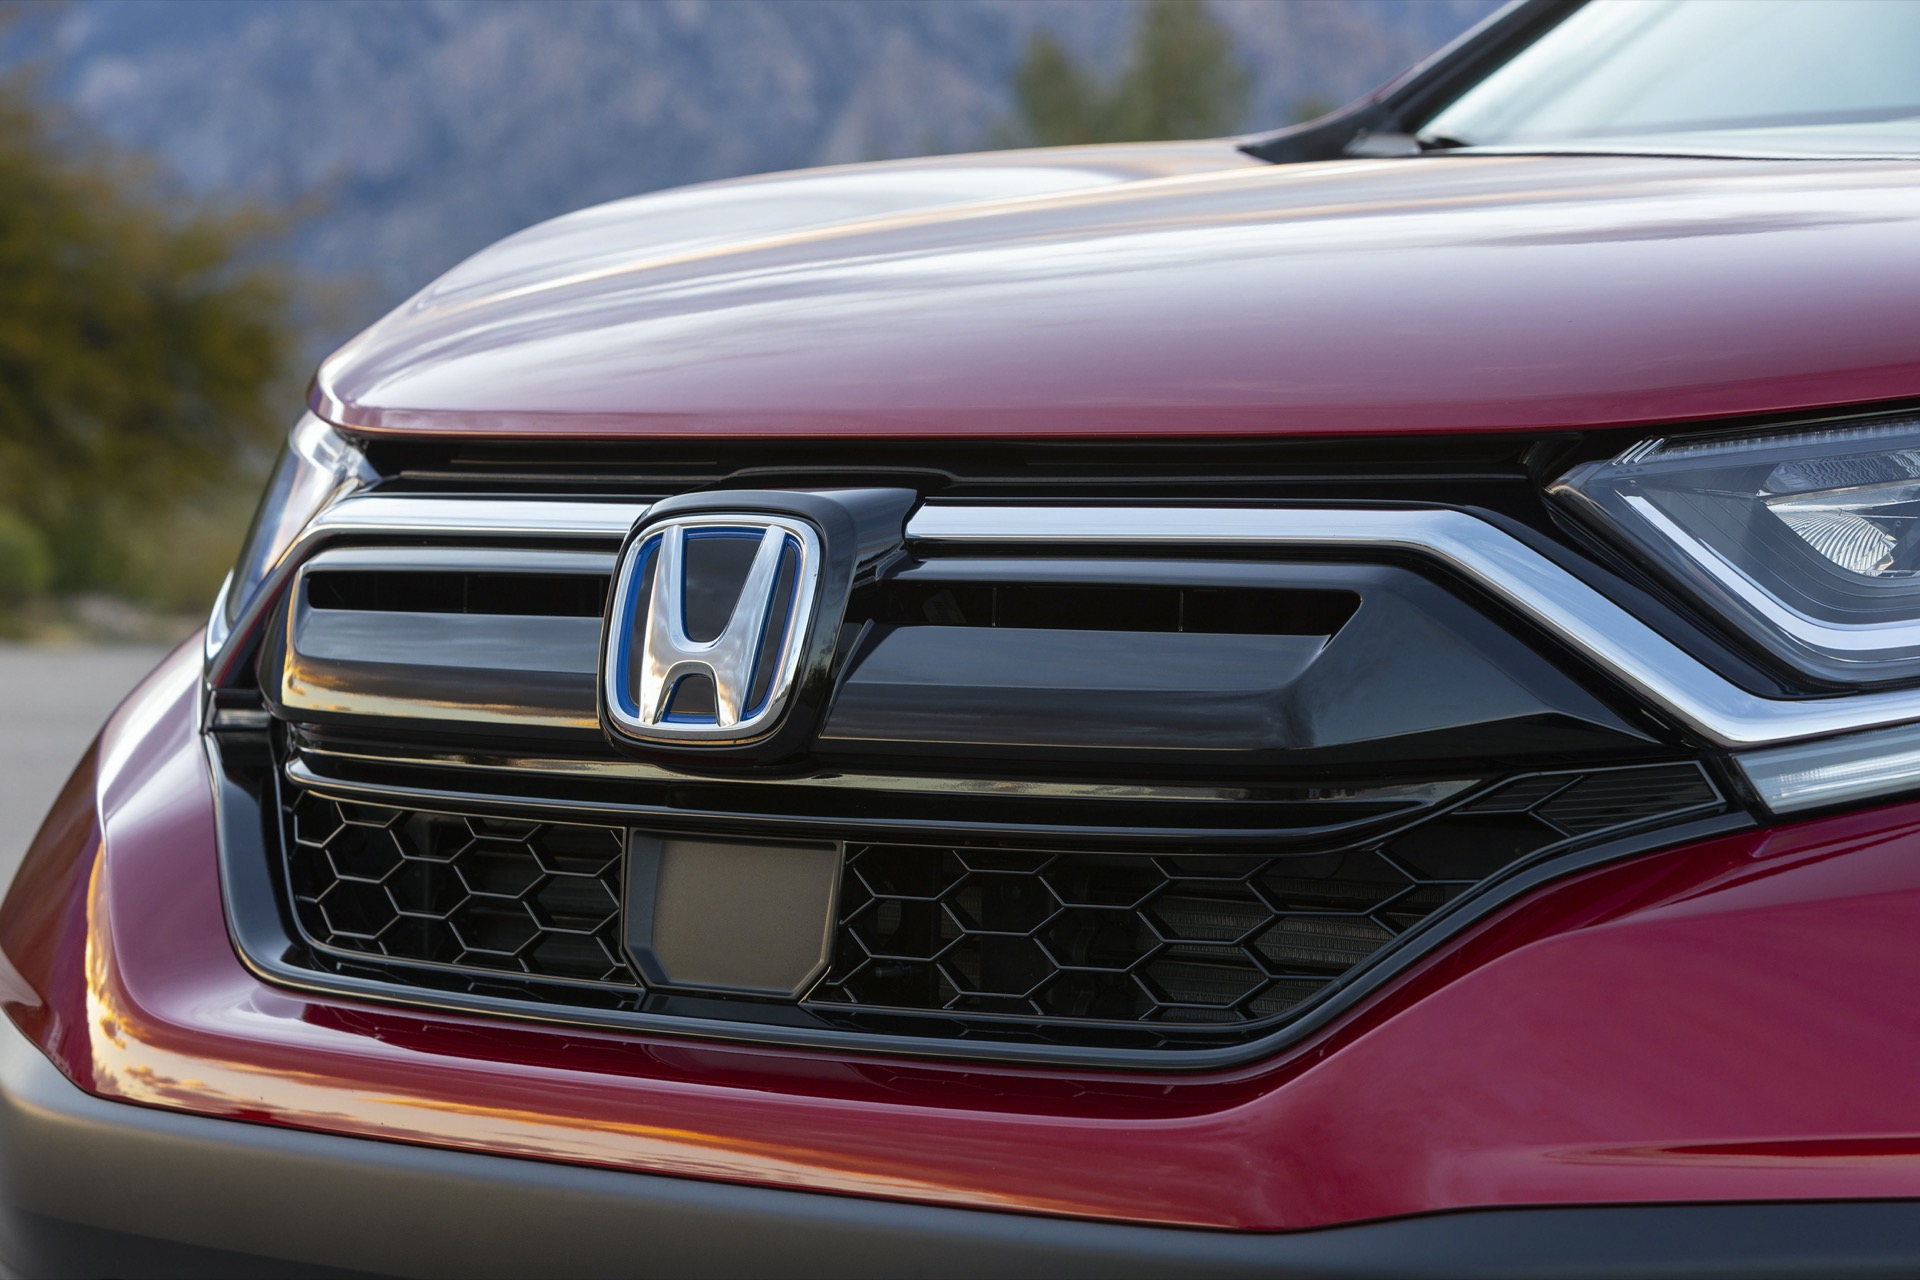 Report: Honda Prologue electric SUV planned for 70,000 annual US sales